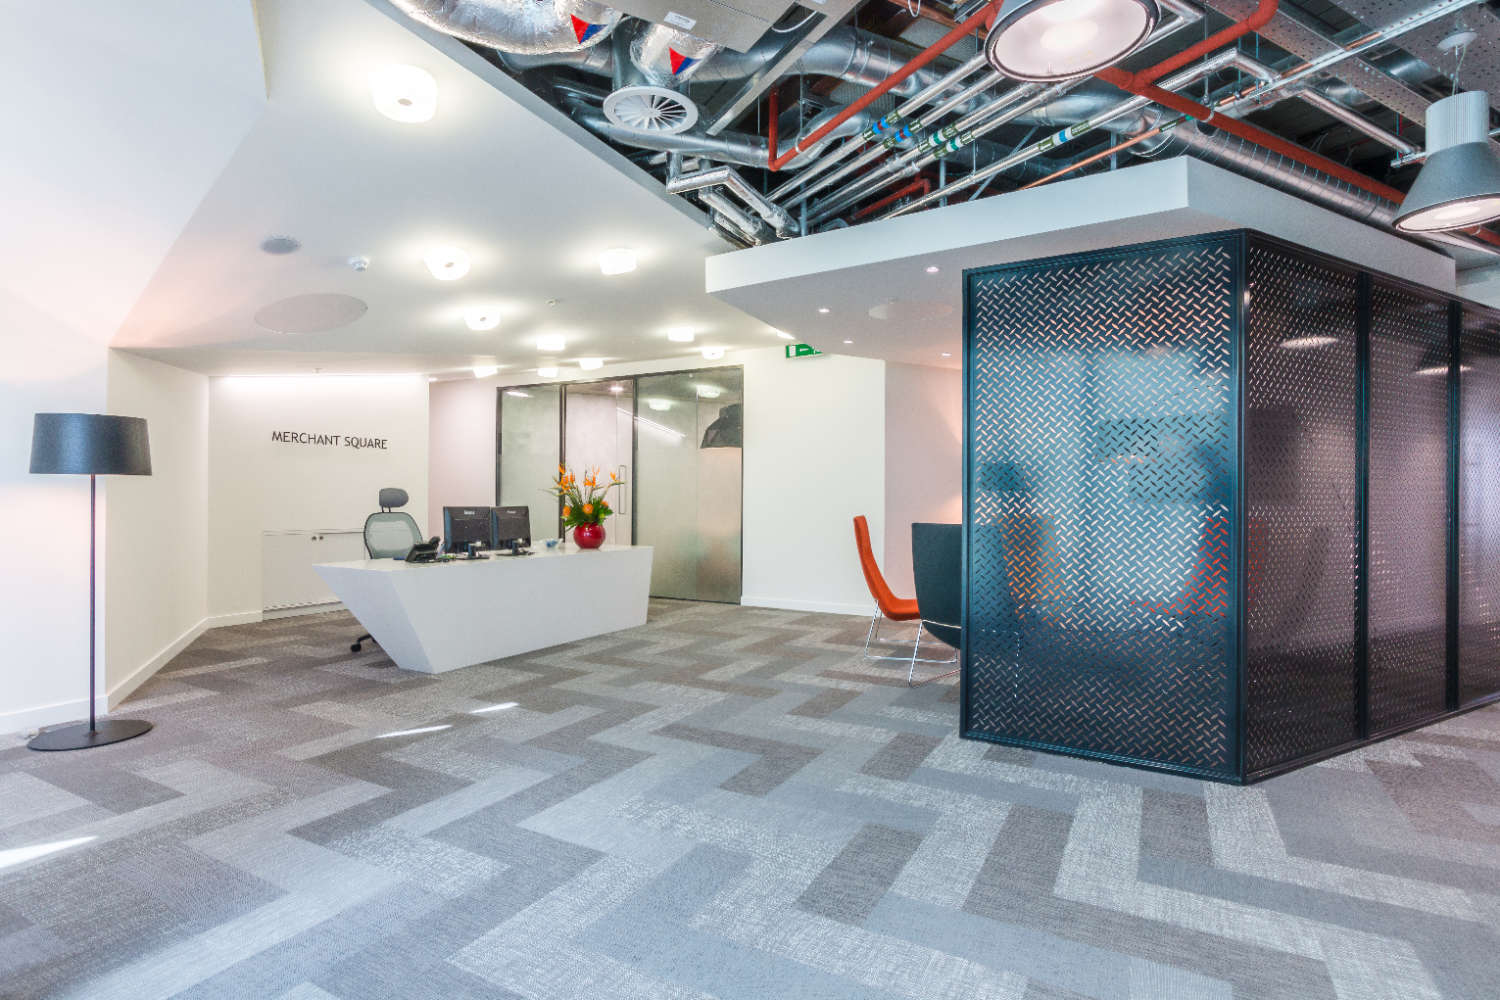 Serviced office London, W2 1AY - Merchant Square  - 25